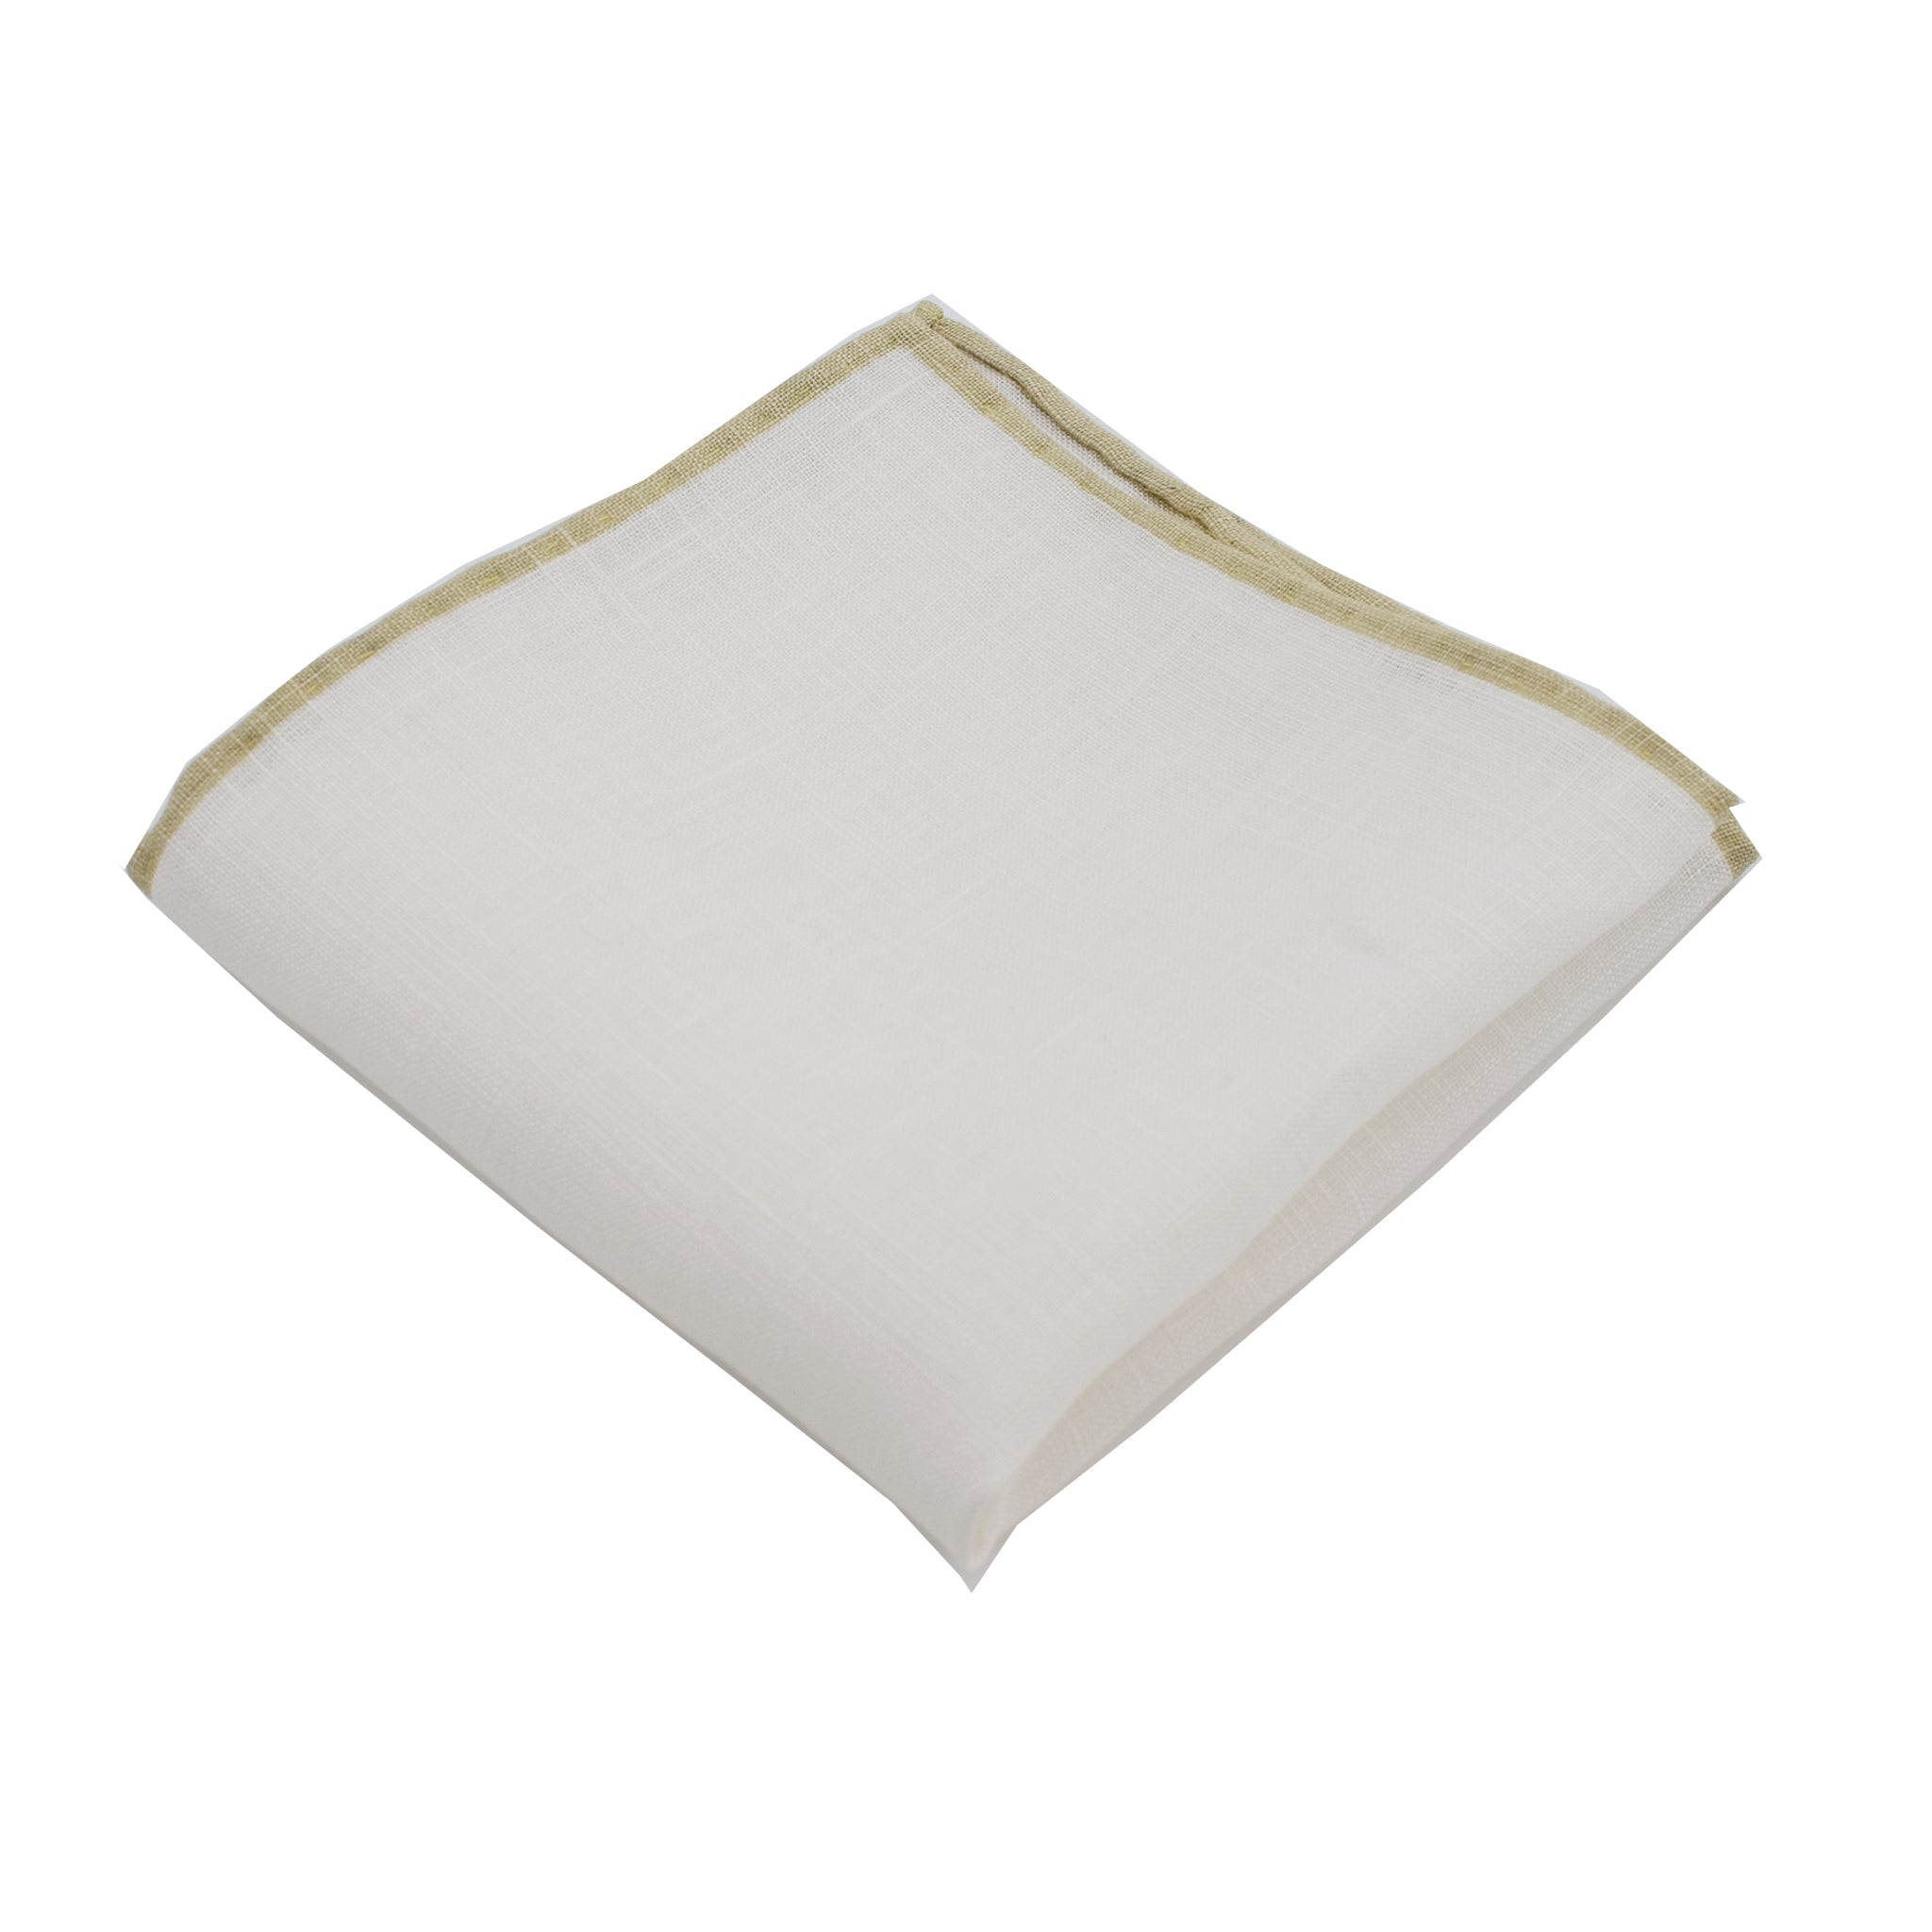 White Linen Pocket Square w/ Khaki Trim